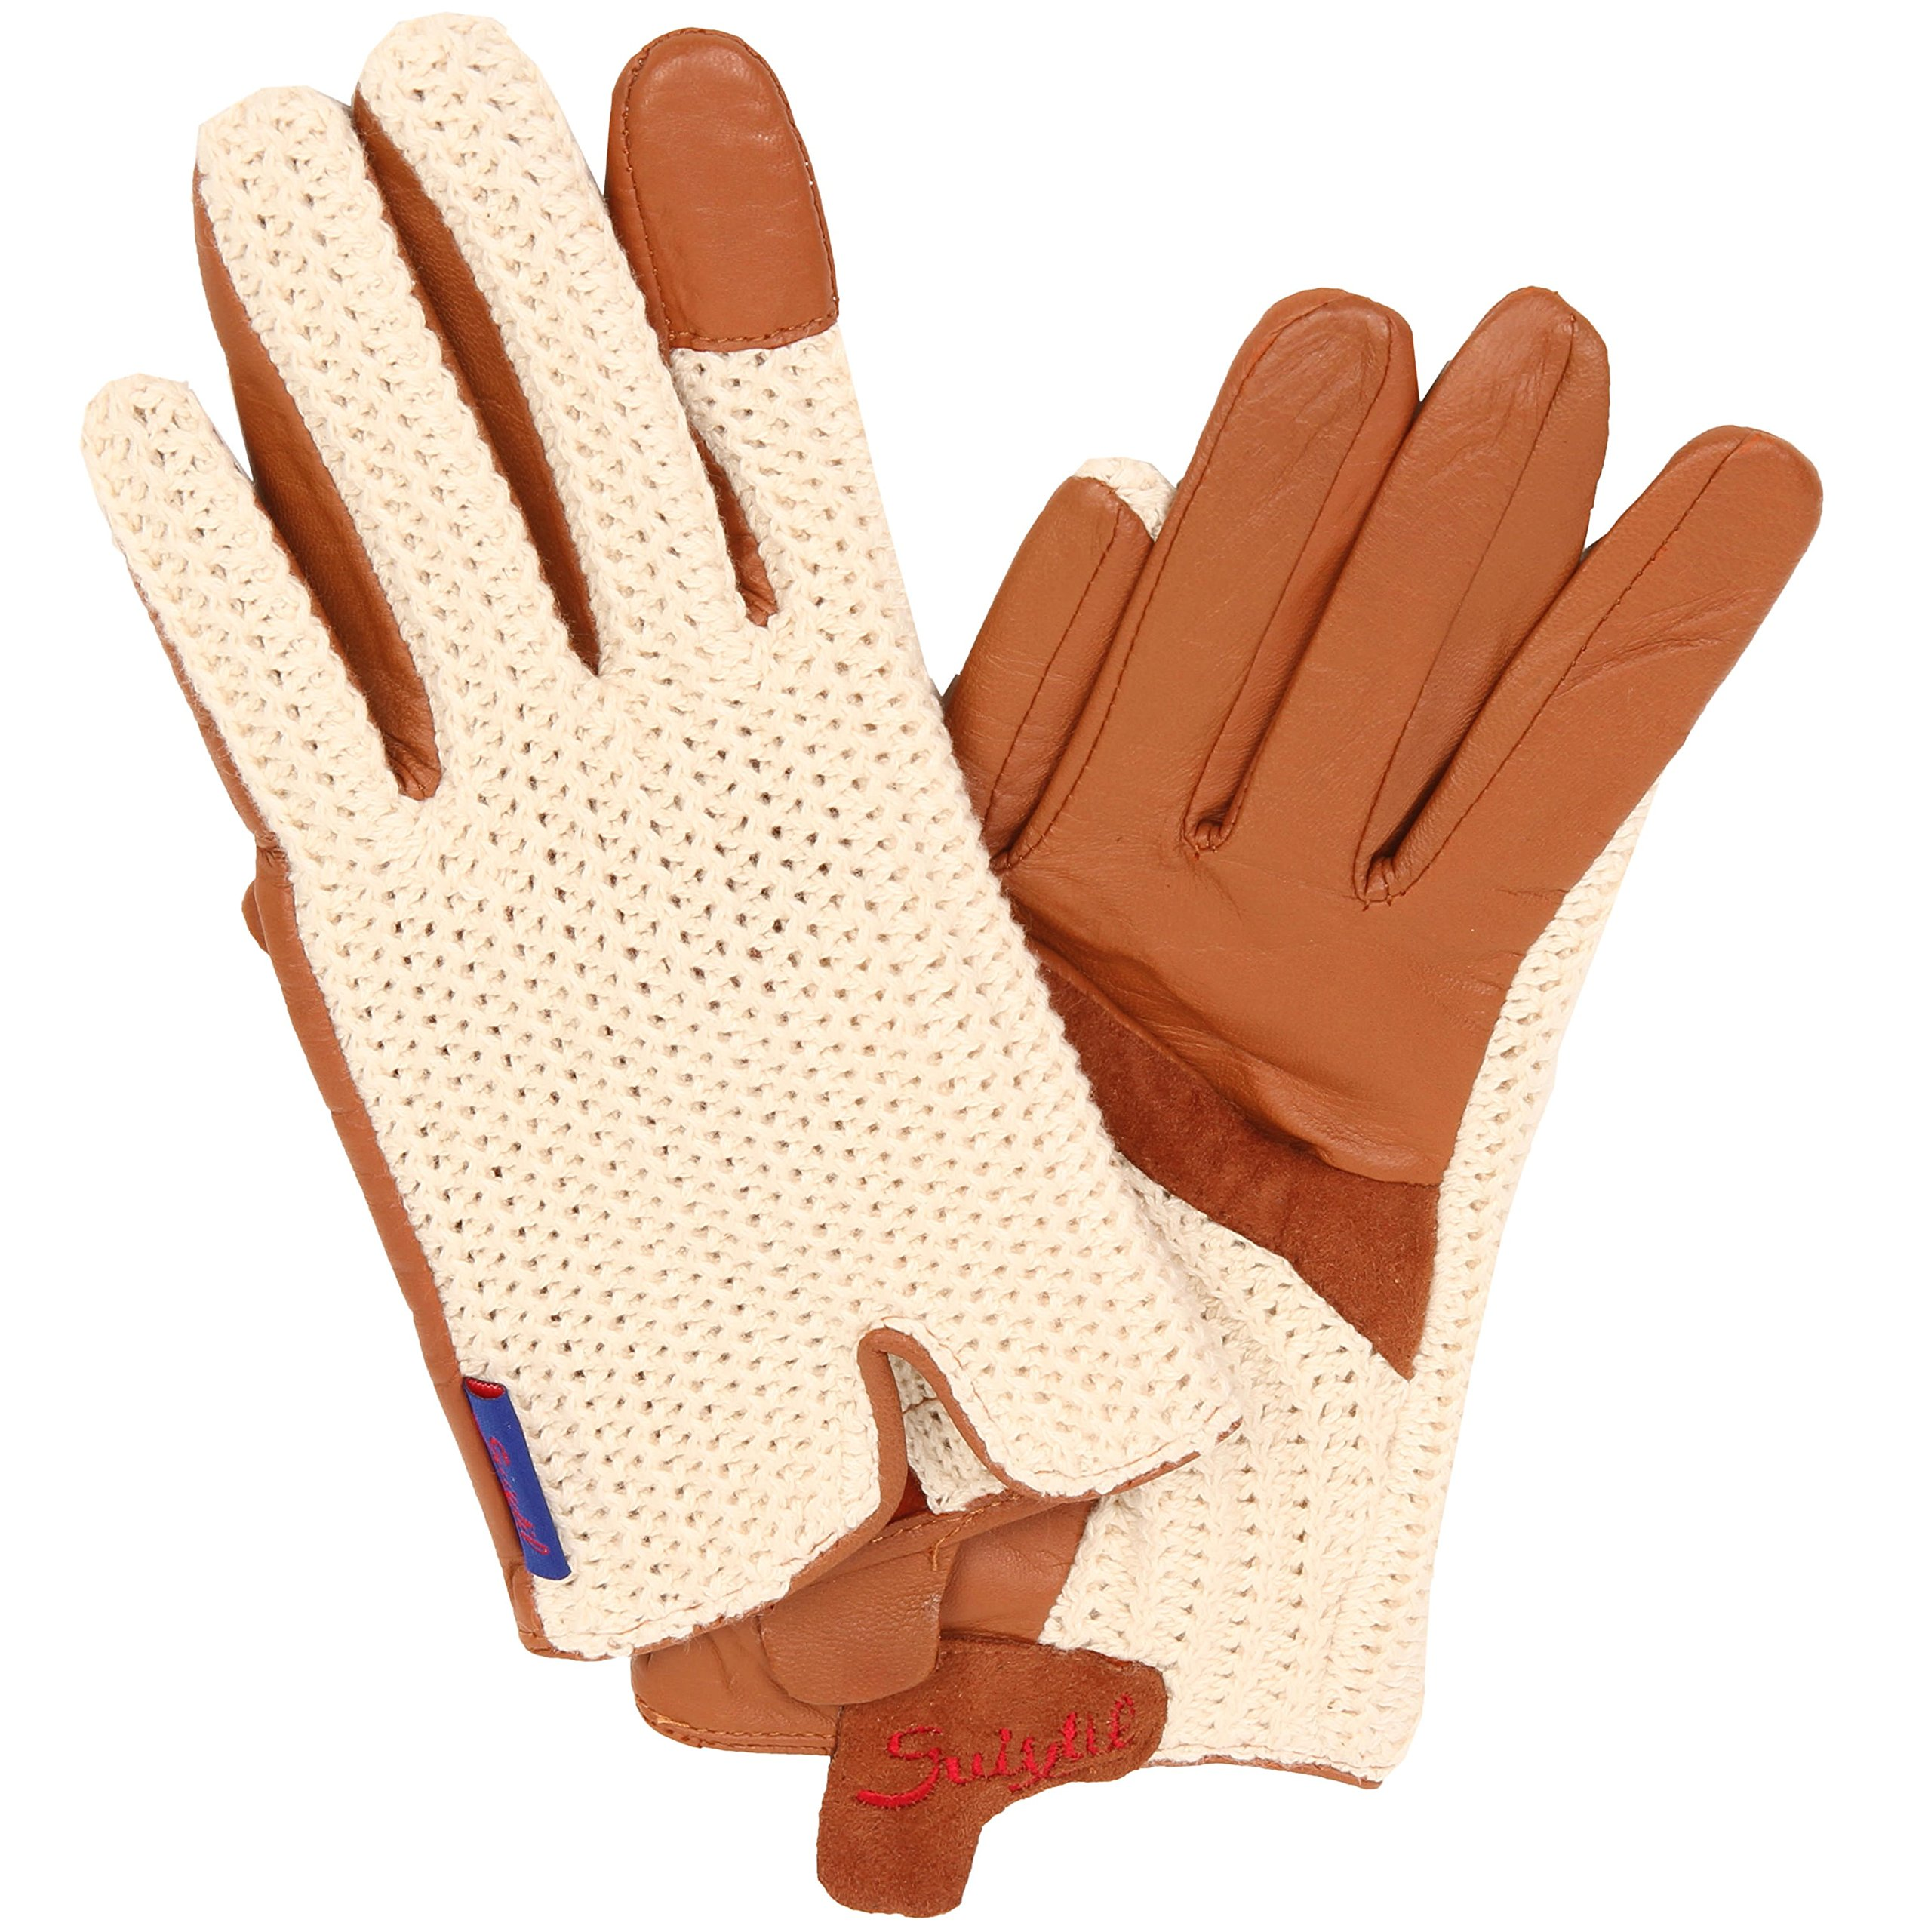 Suixtil Grand Prix Race lamb leather & knitted cotton Driving Gloves, Cognac, M by Suixtil (Image #1)